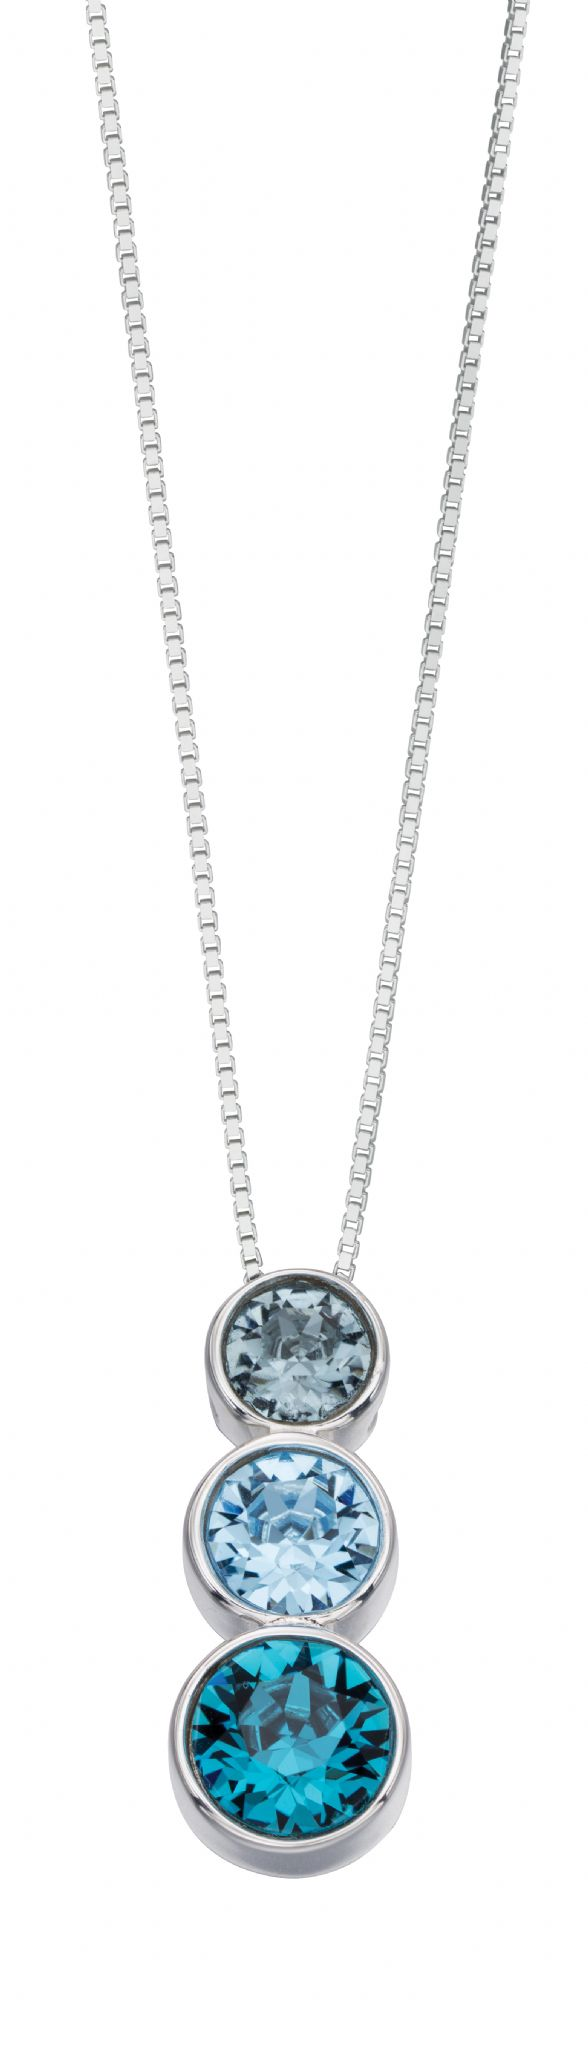 Beginnings Silver Triple Blue Crystal Pendant P4277 & Beginnings Silver Triple Blue Crystal Necklace P4277  | Wearitboutique